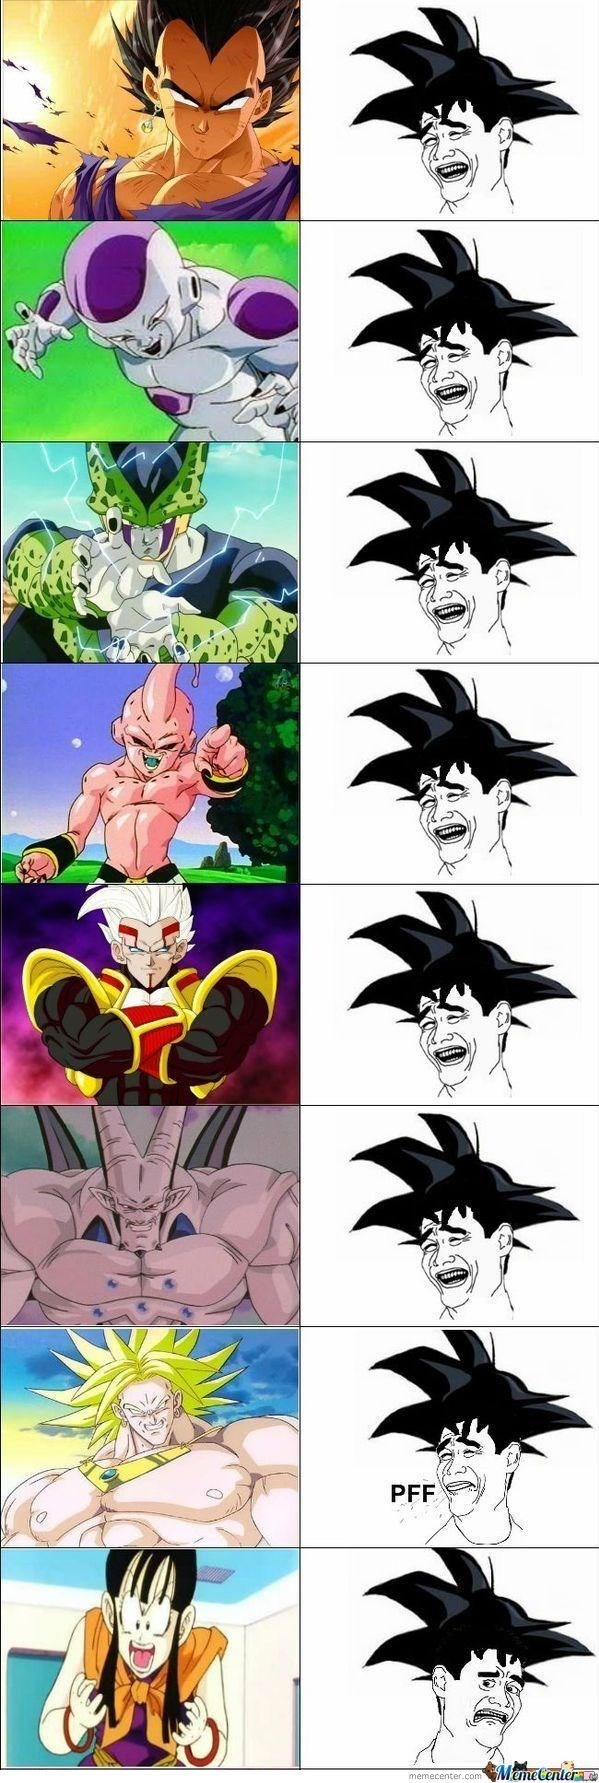 Best DBZ Villain